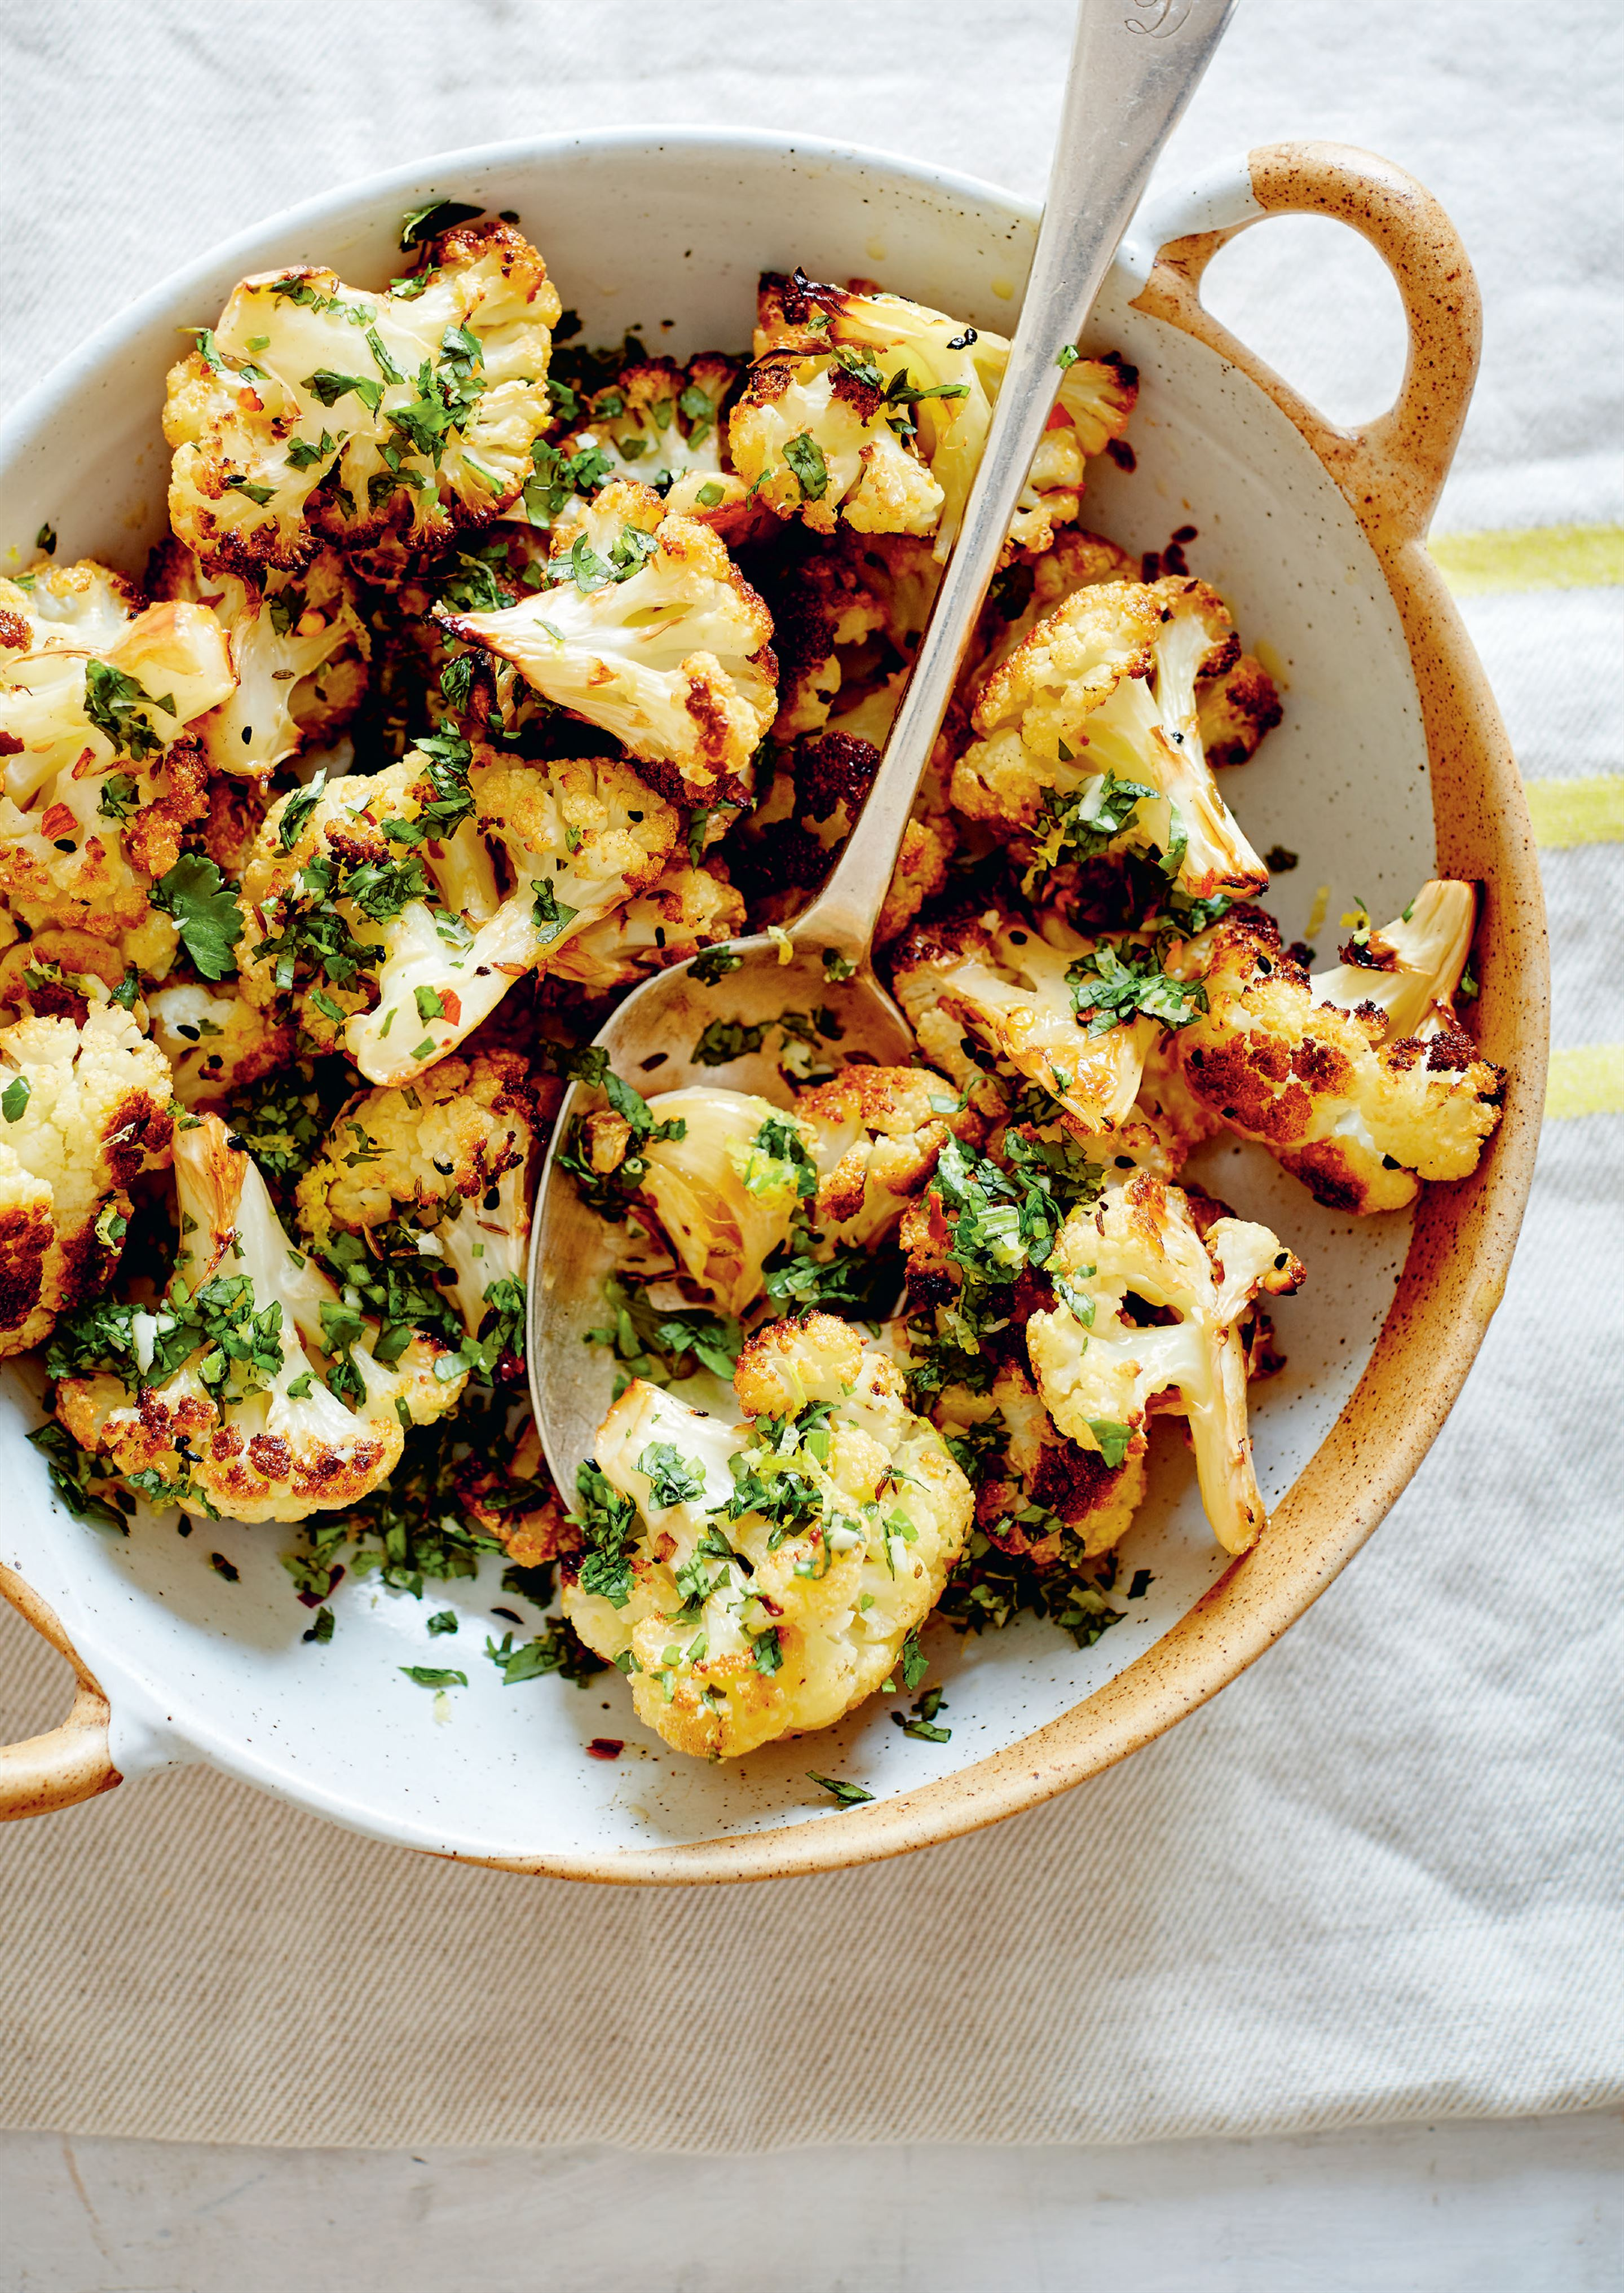 Roasted cauliflower with lemon, nigella seeds and gremolata